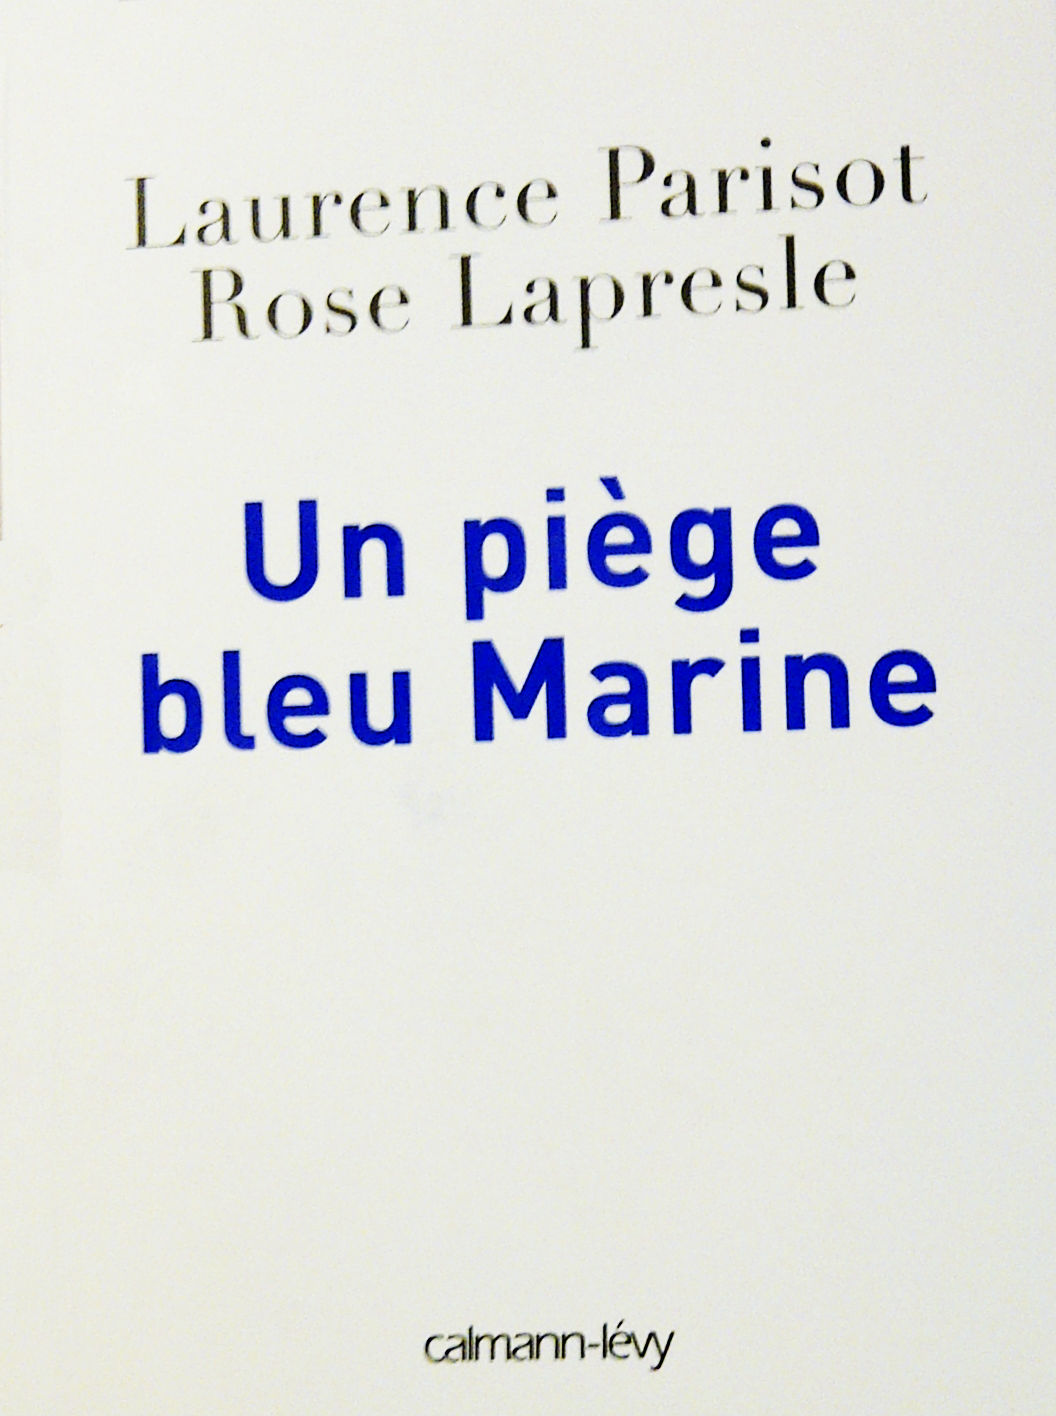 laurence-parisot-politicienne-marine